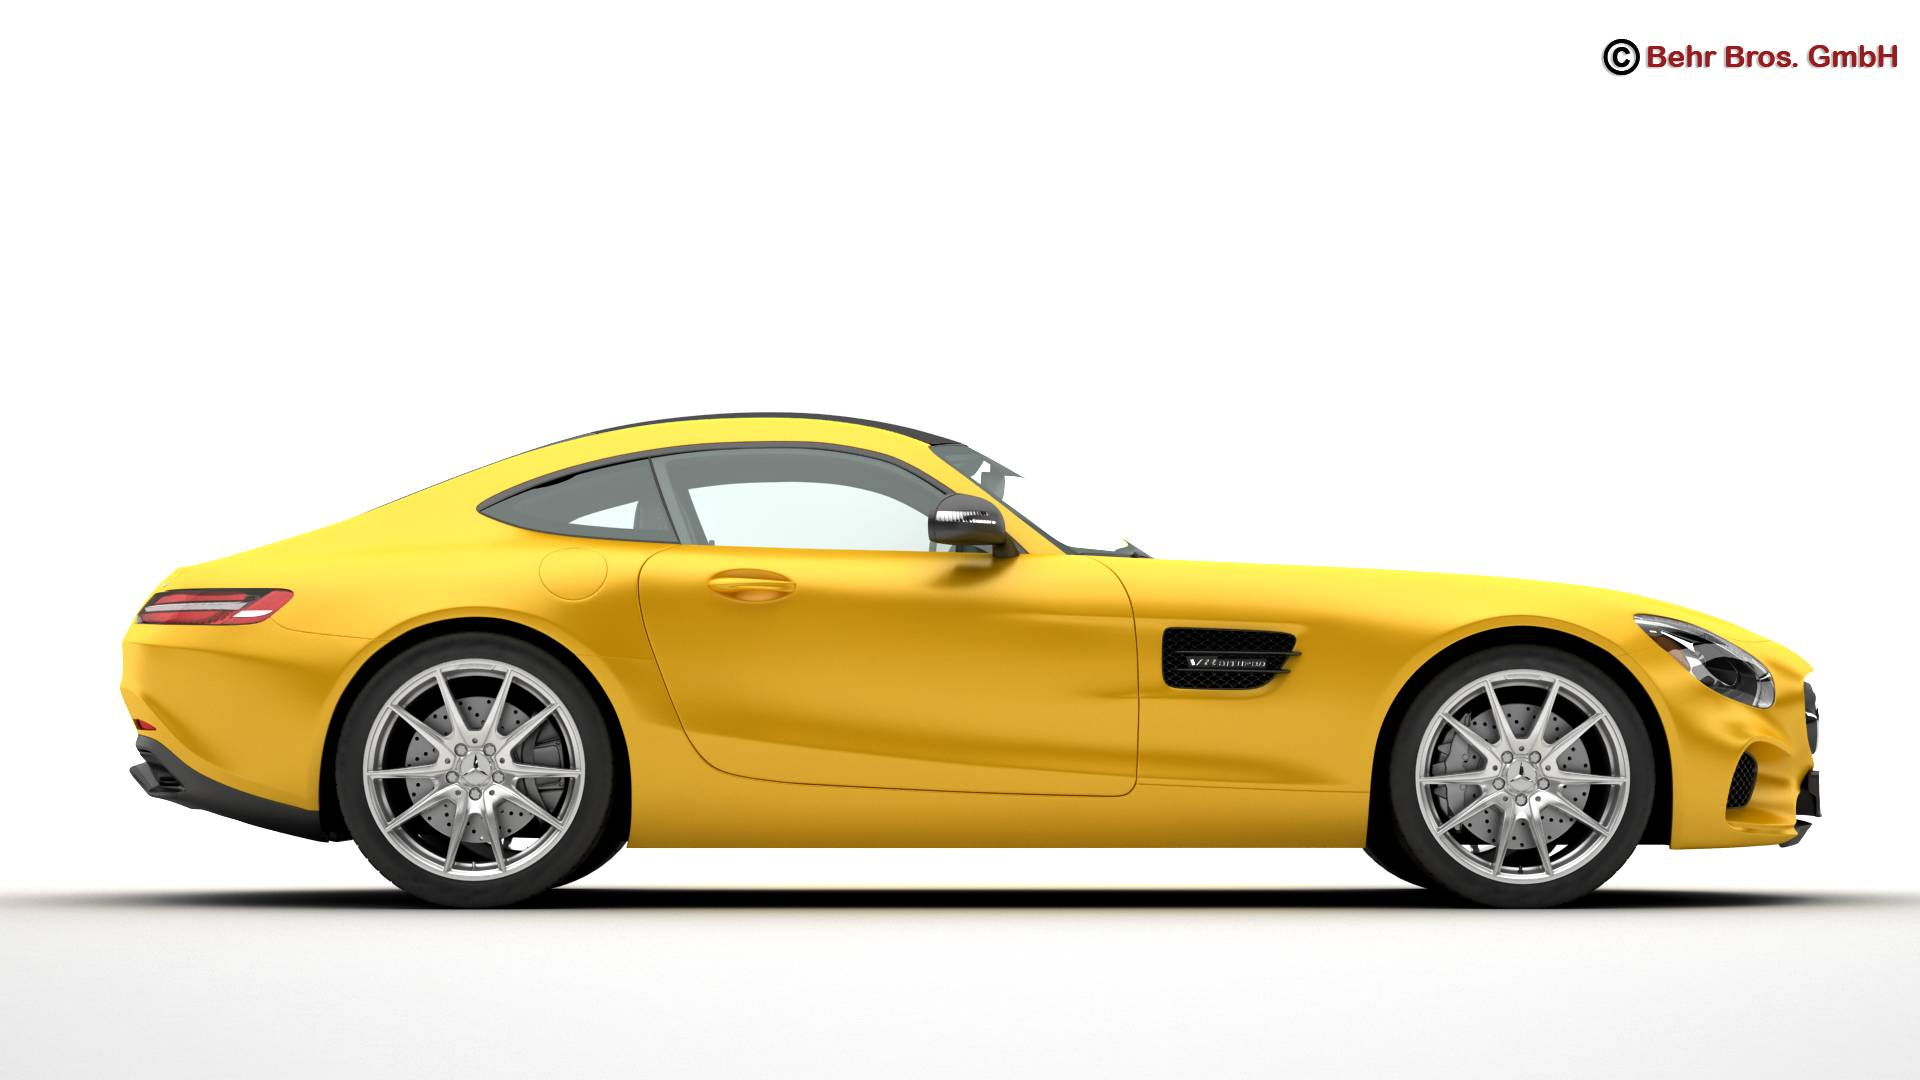 mercedes amg gt 2015 eu and us version 3d model 3ds max fbx c4d lwo ma mb obj 210117